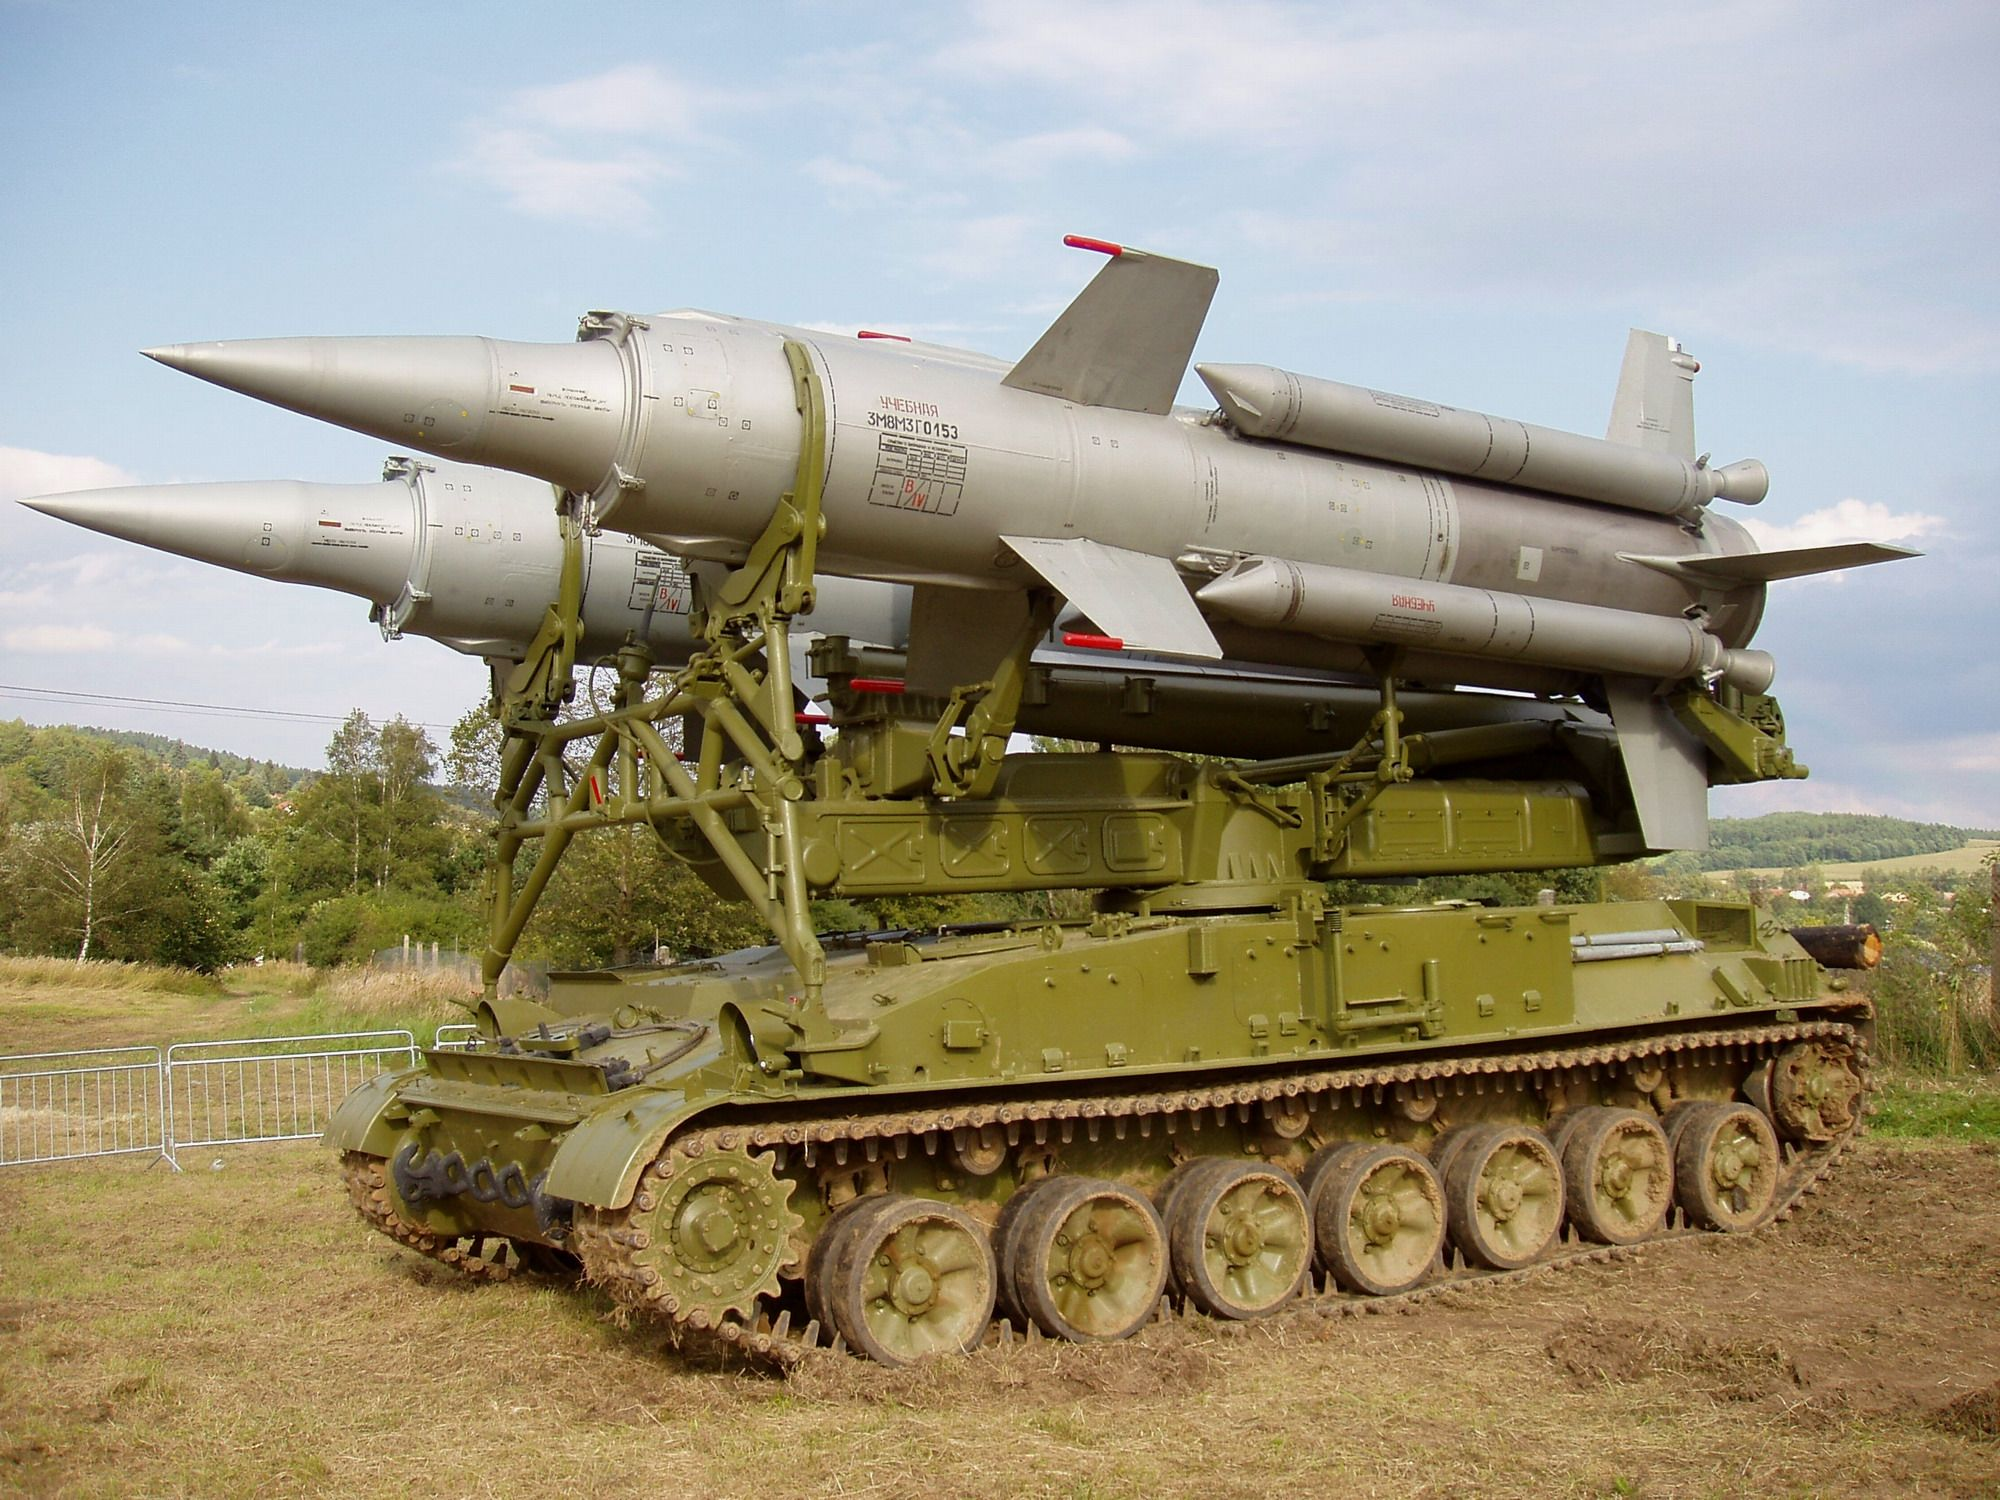 sa-26 surface to air missile